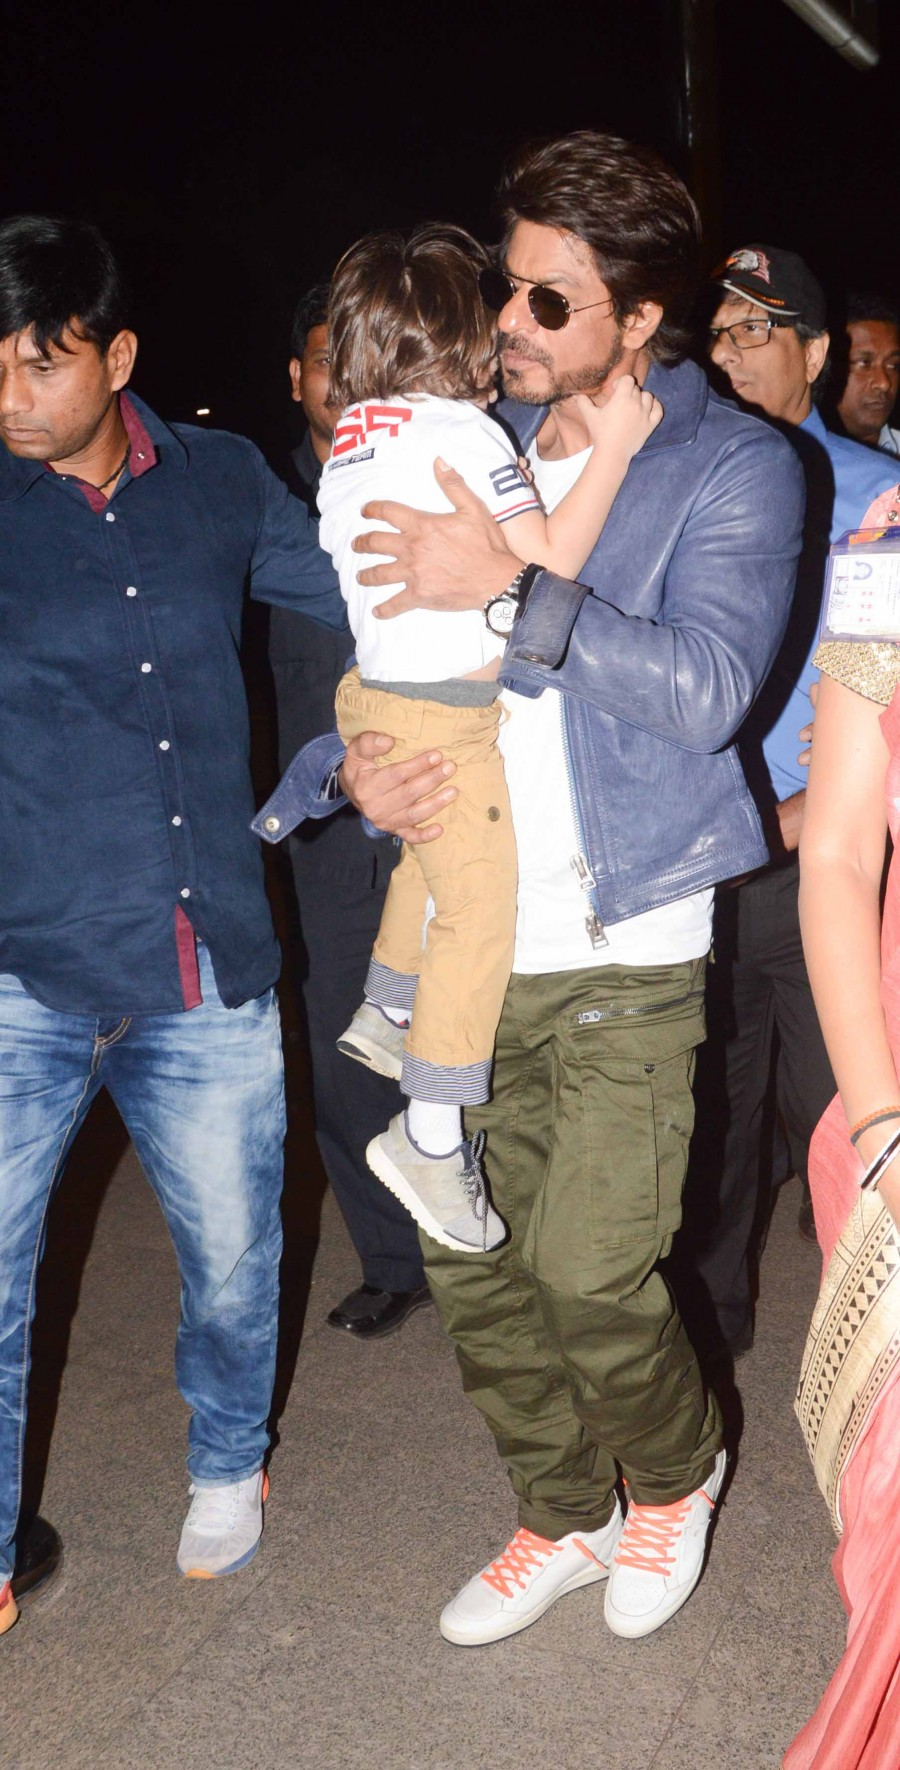 Shahrukh Khan,Shahrukh Khan with Abram,Shahrukh Khan with Abram at Mumbai Airport,Shahrukh Khan at Mumbai Airport,Abram at Mumbai Airport,Abram,Shahrukh Khan and Abram